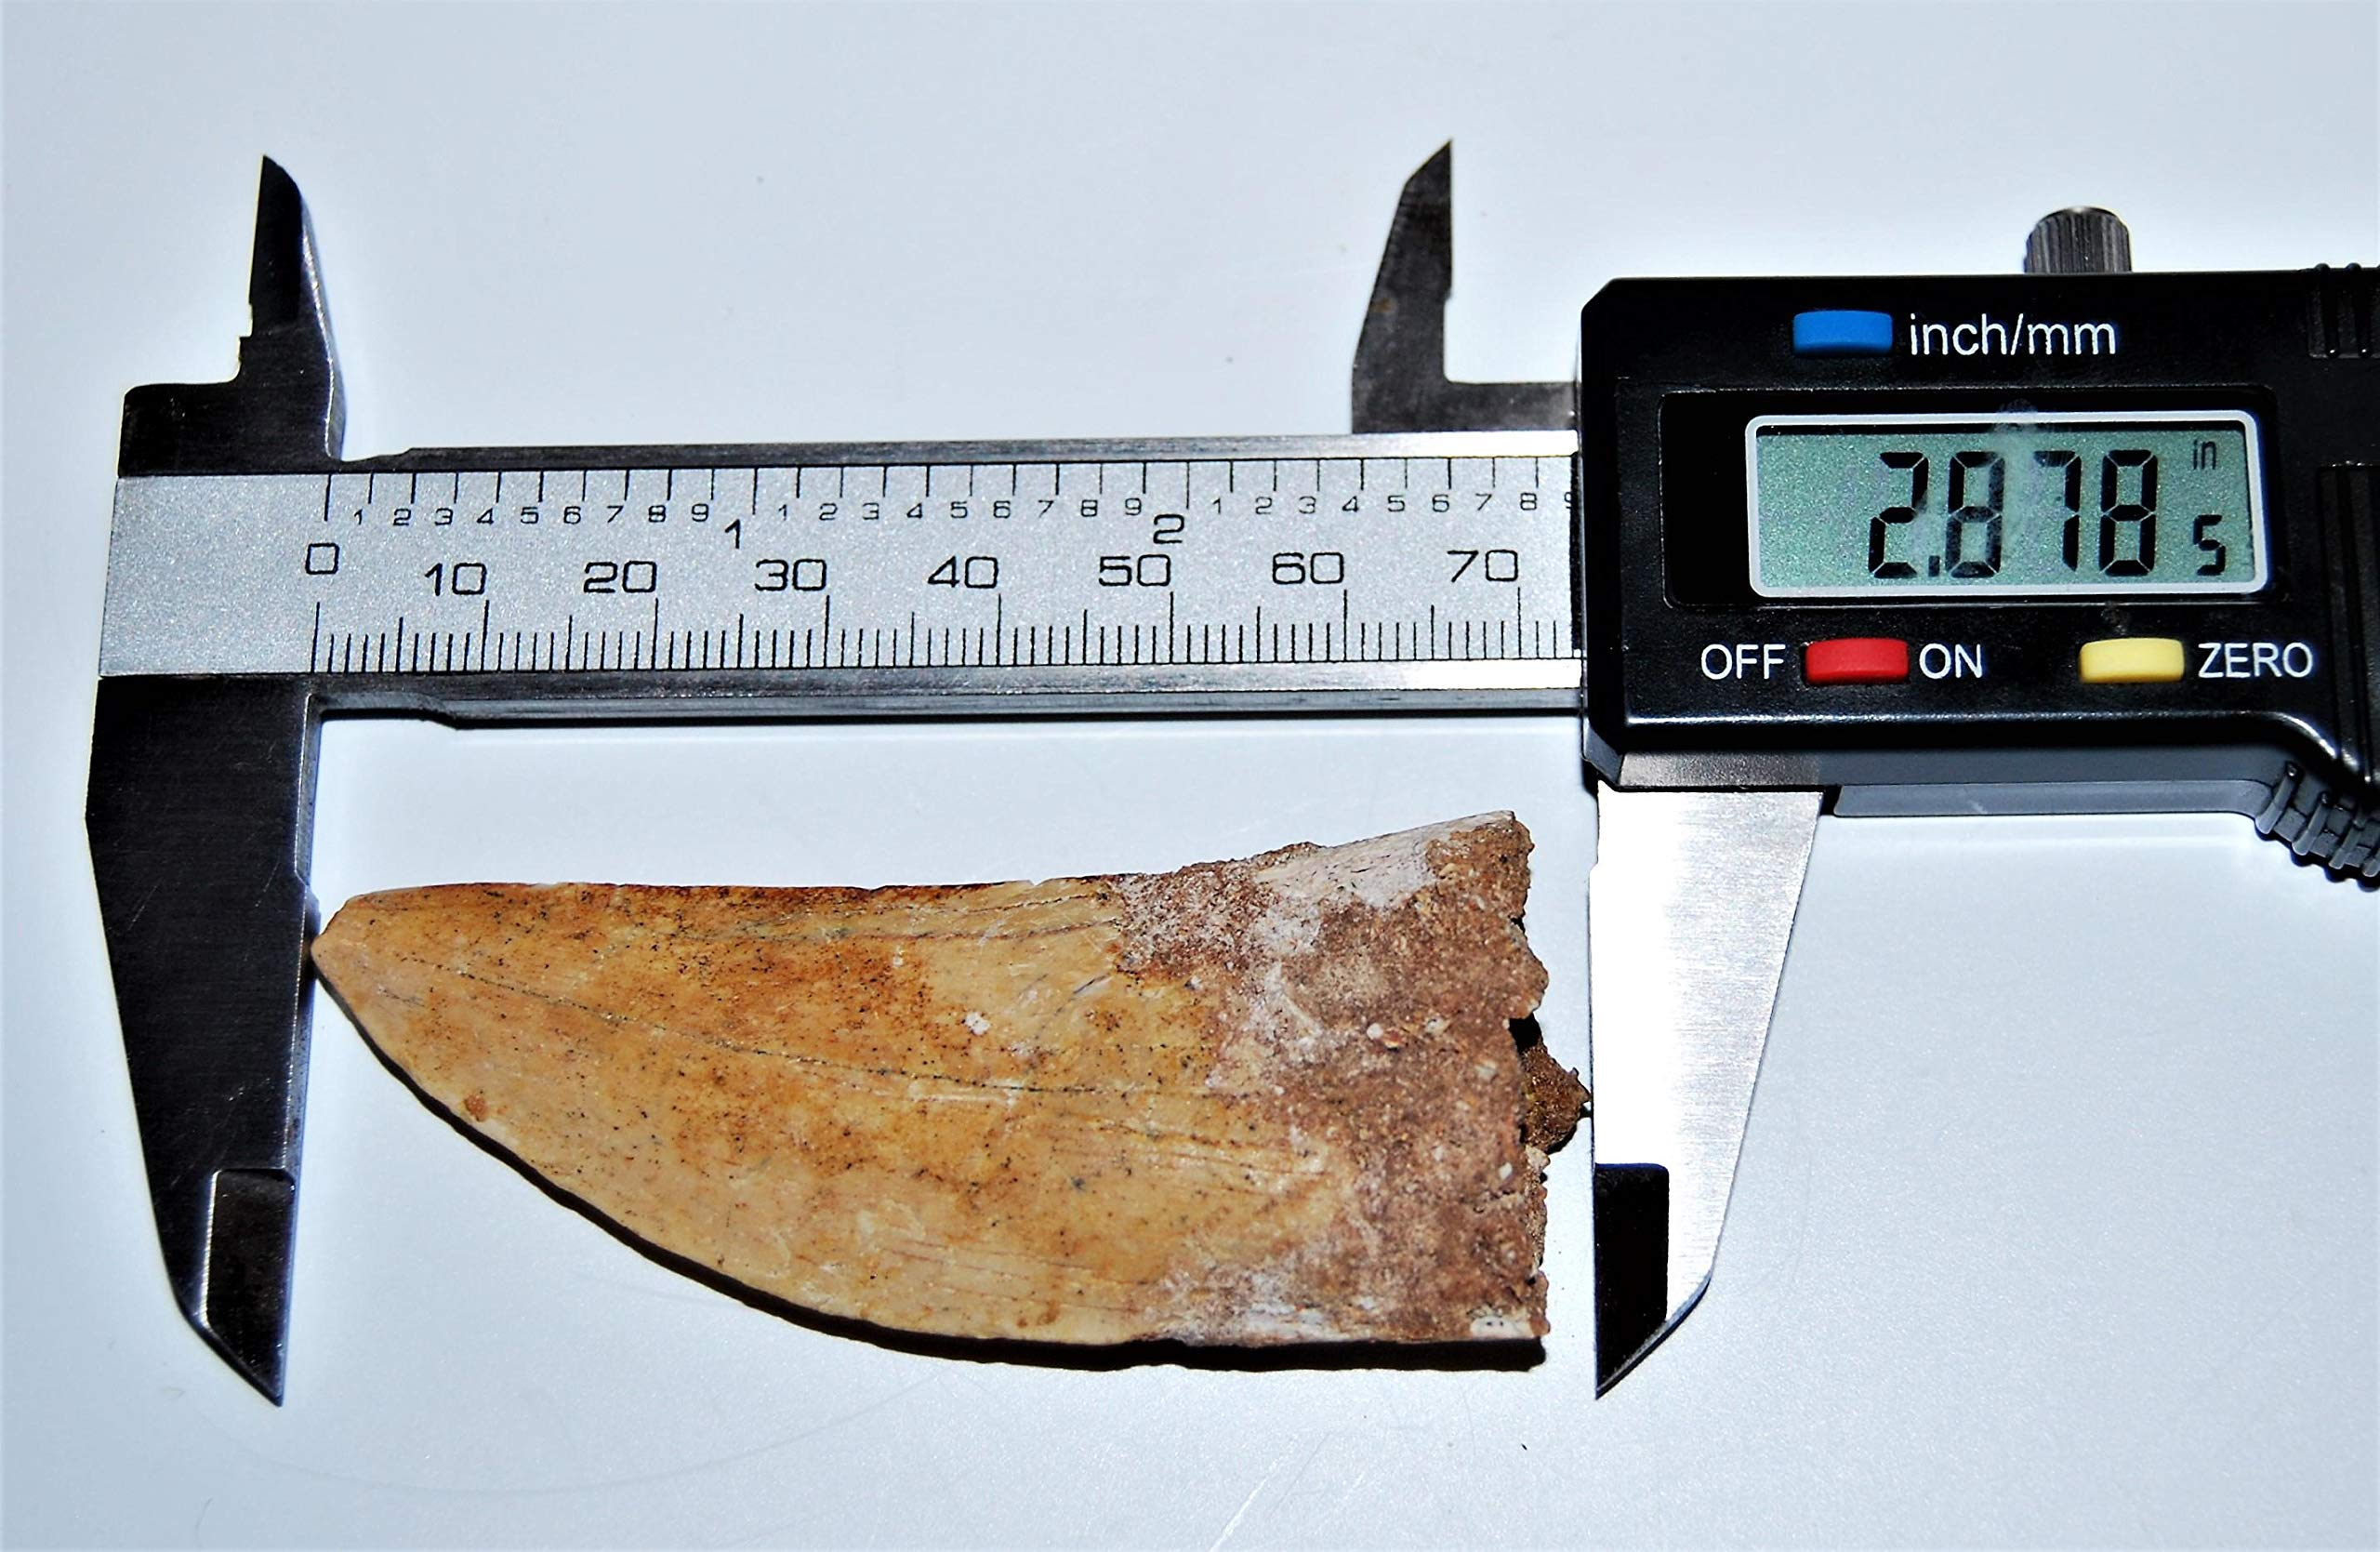 Carcharodontosaurus Dinosaur Tooth 2.878'' Fossil African T-Rex LDB #14167 15o by Fossils, Meteorites, & More (Image #4)